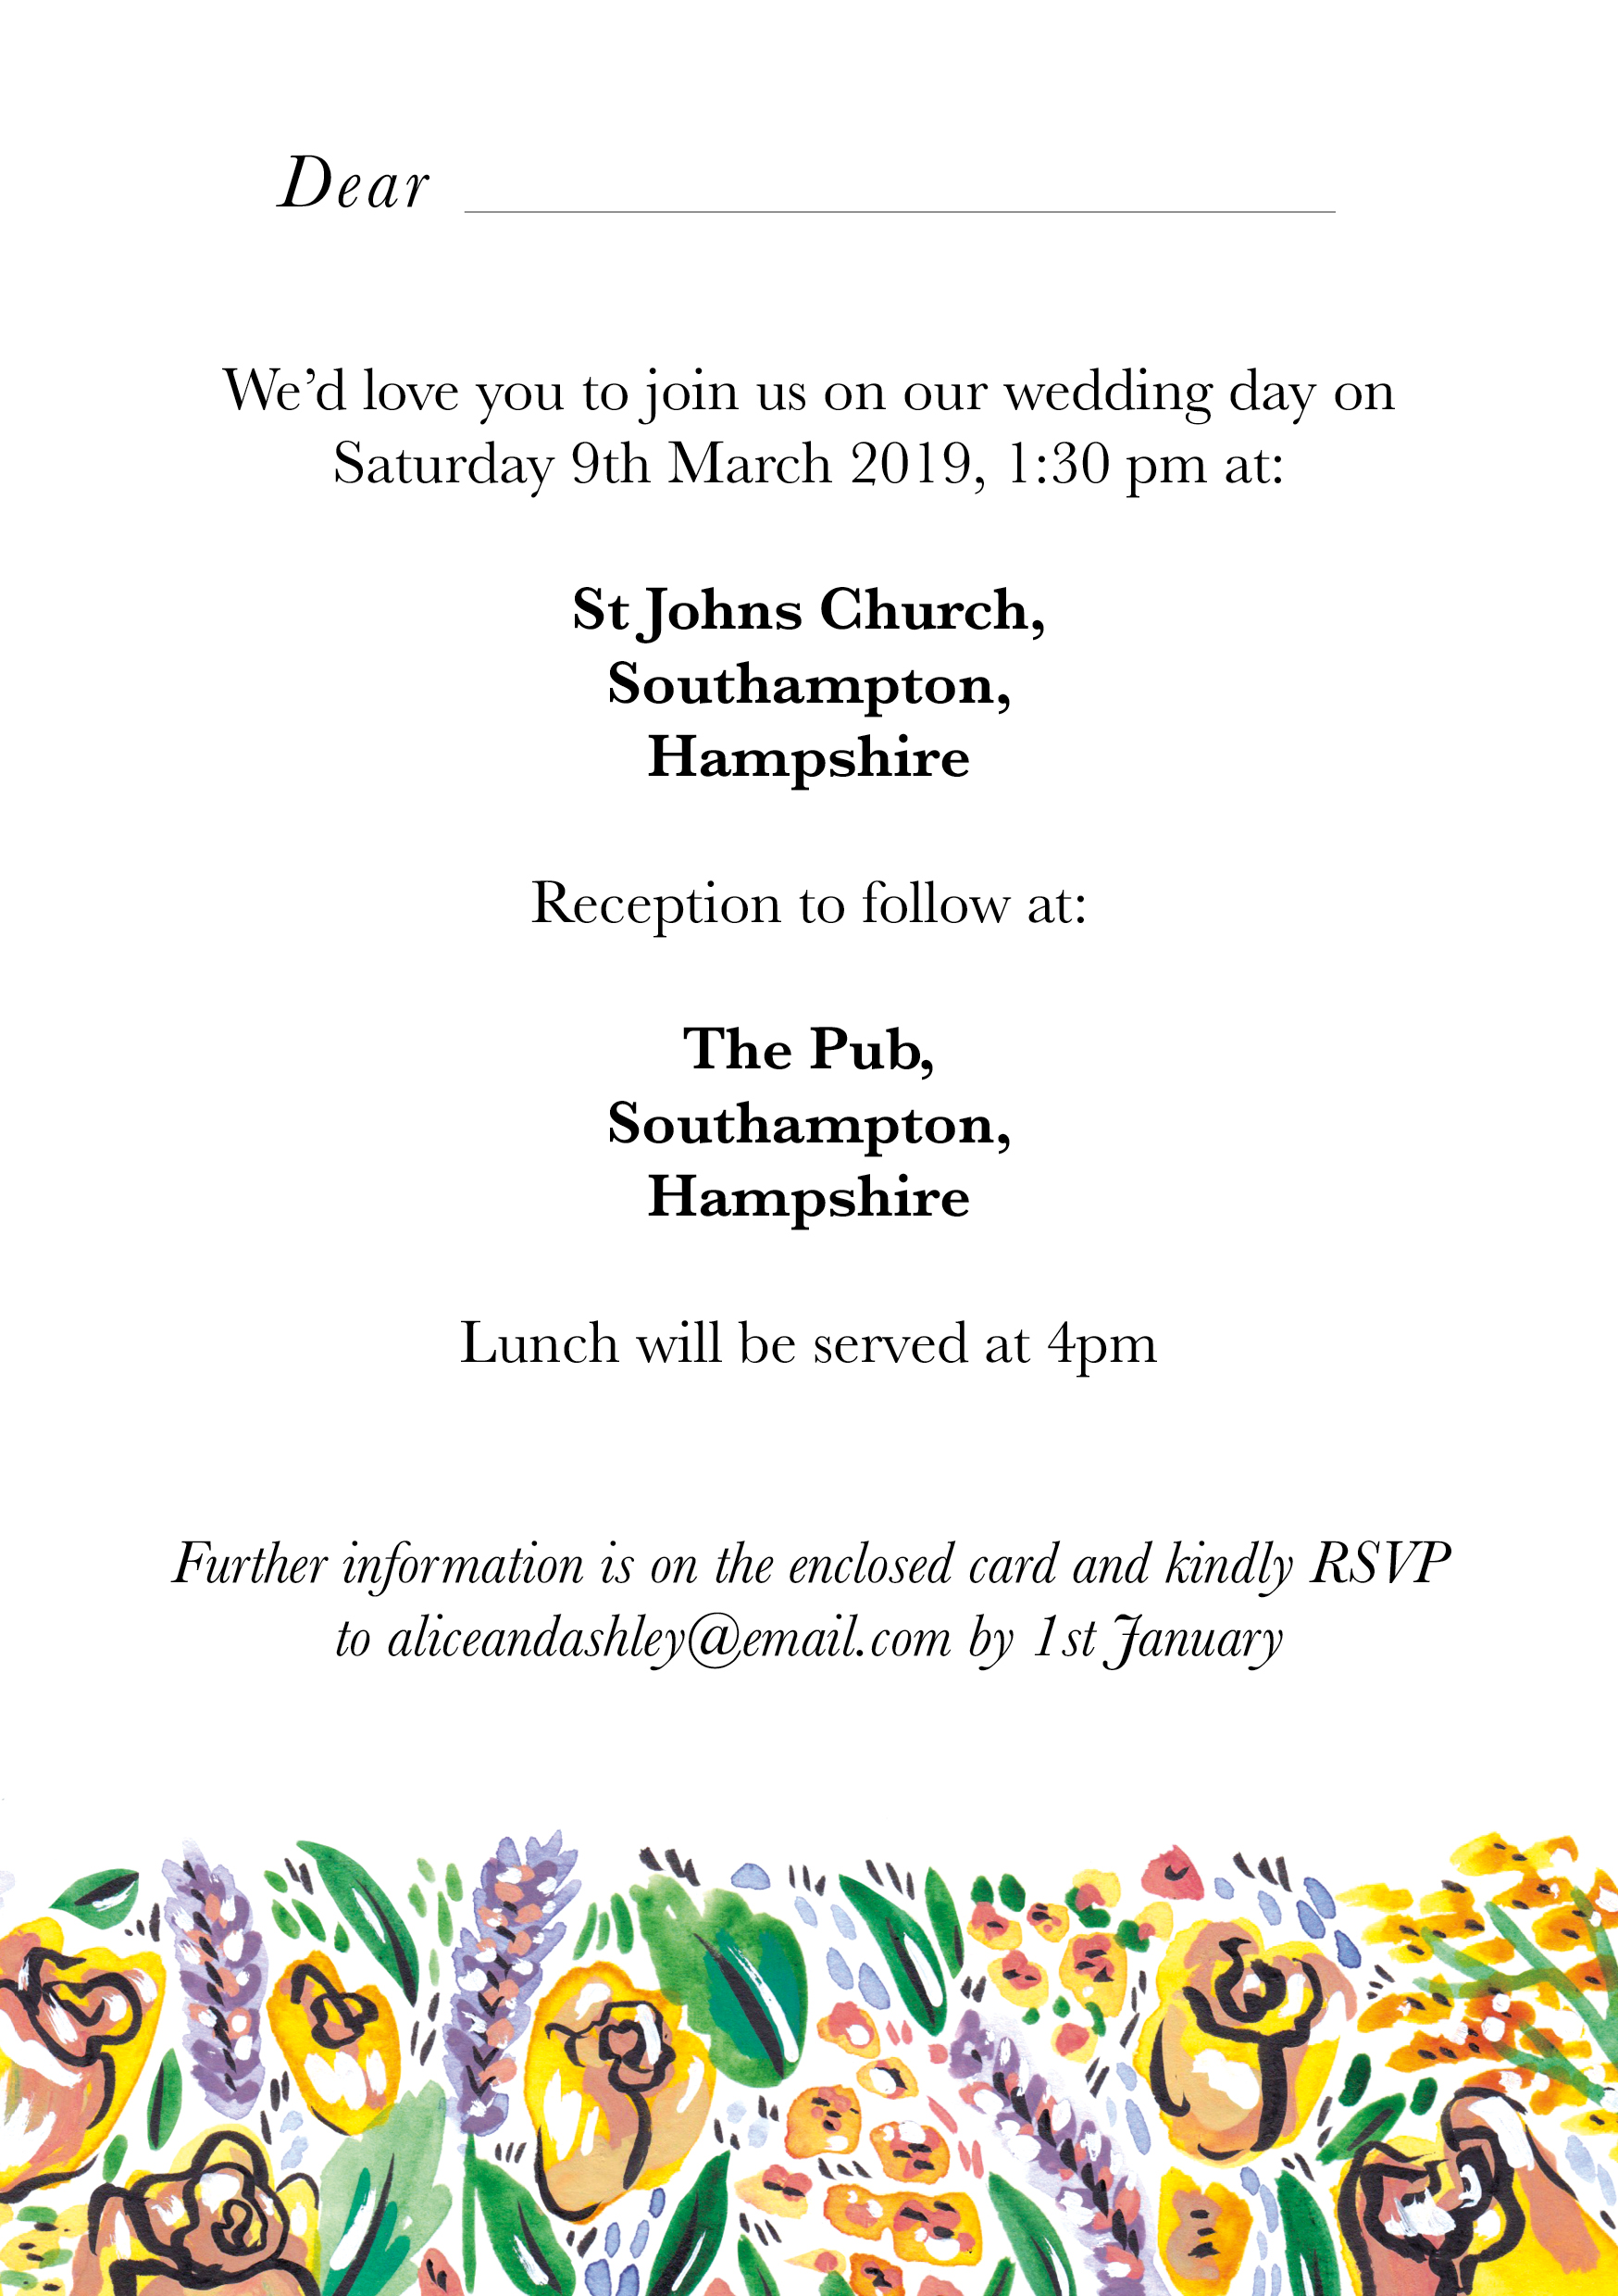 Invitation Designs2.jpg